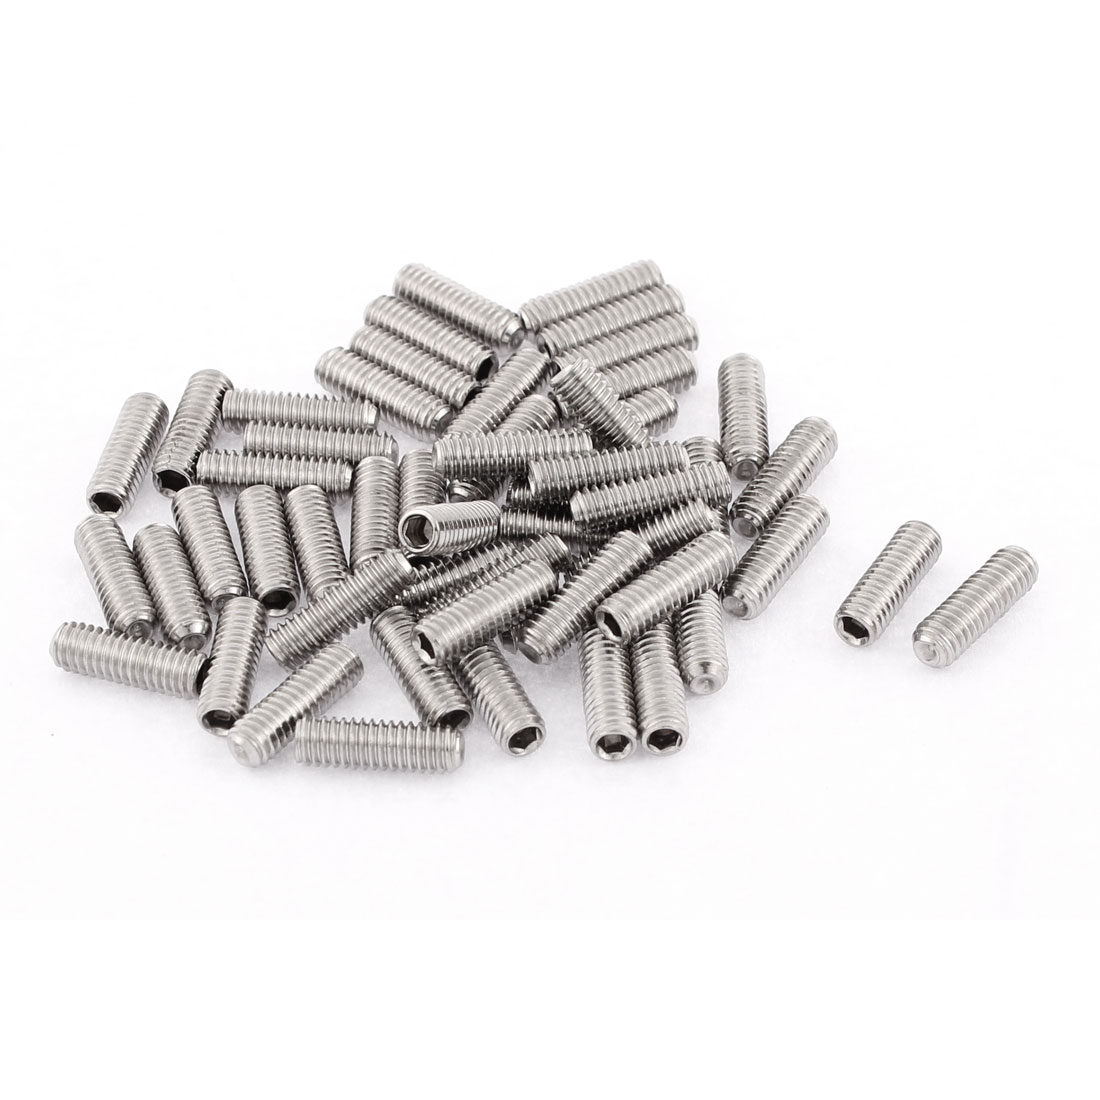 M4x12mm Stainless Steel Hex Socket Set Cap Point Grub Screws Silver Tone 50pcs